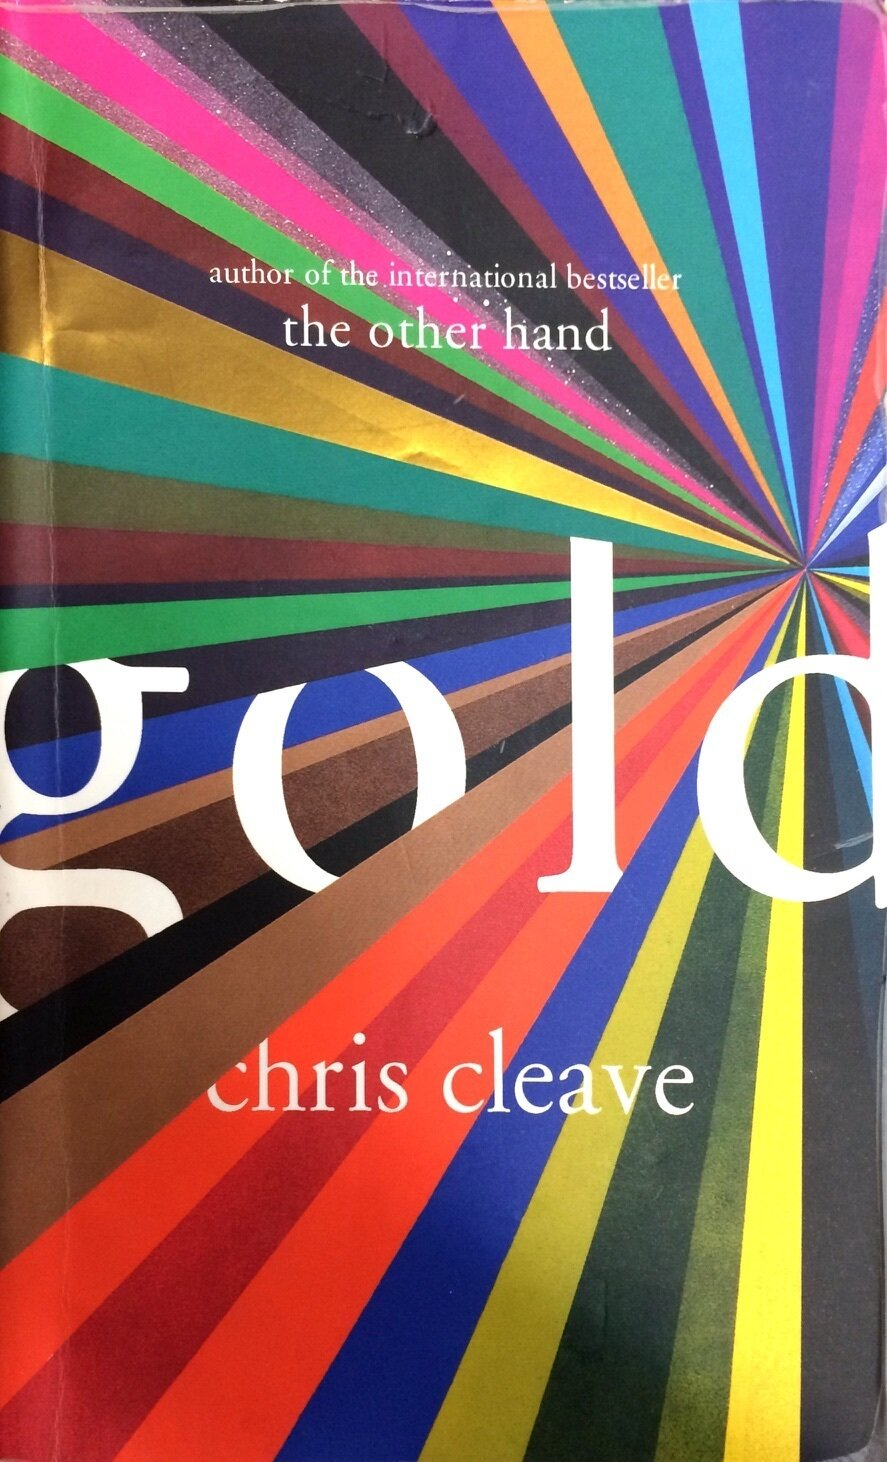 Gold; Chris Cleave